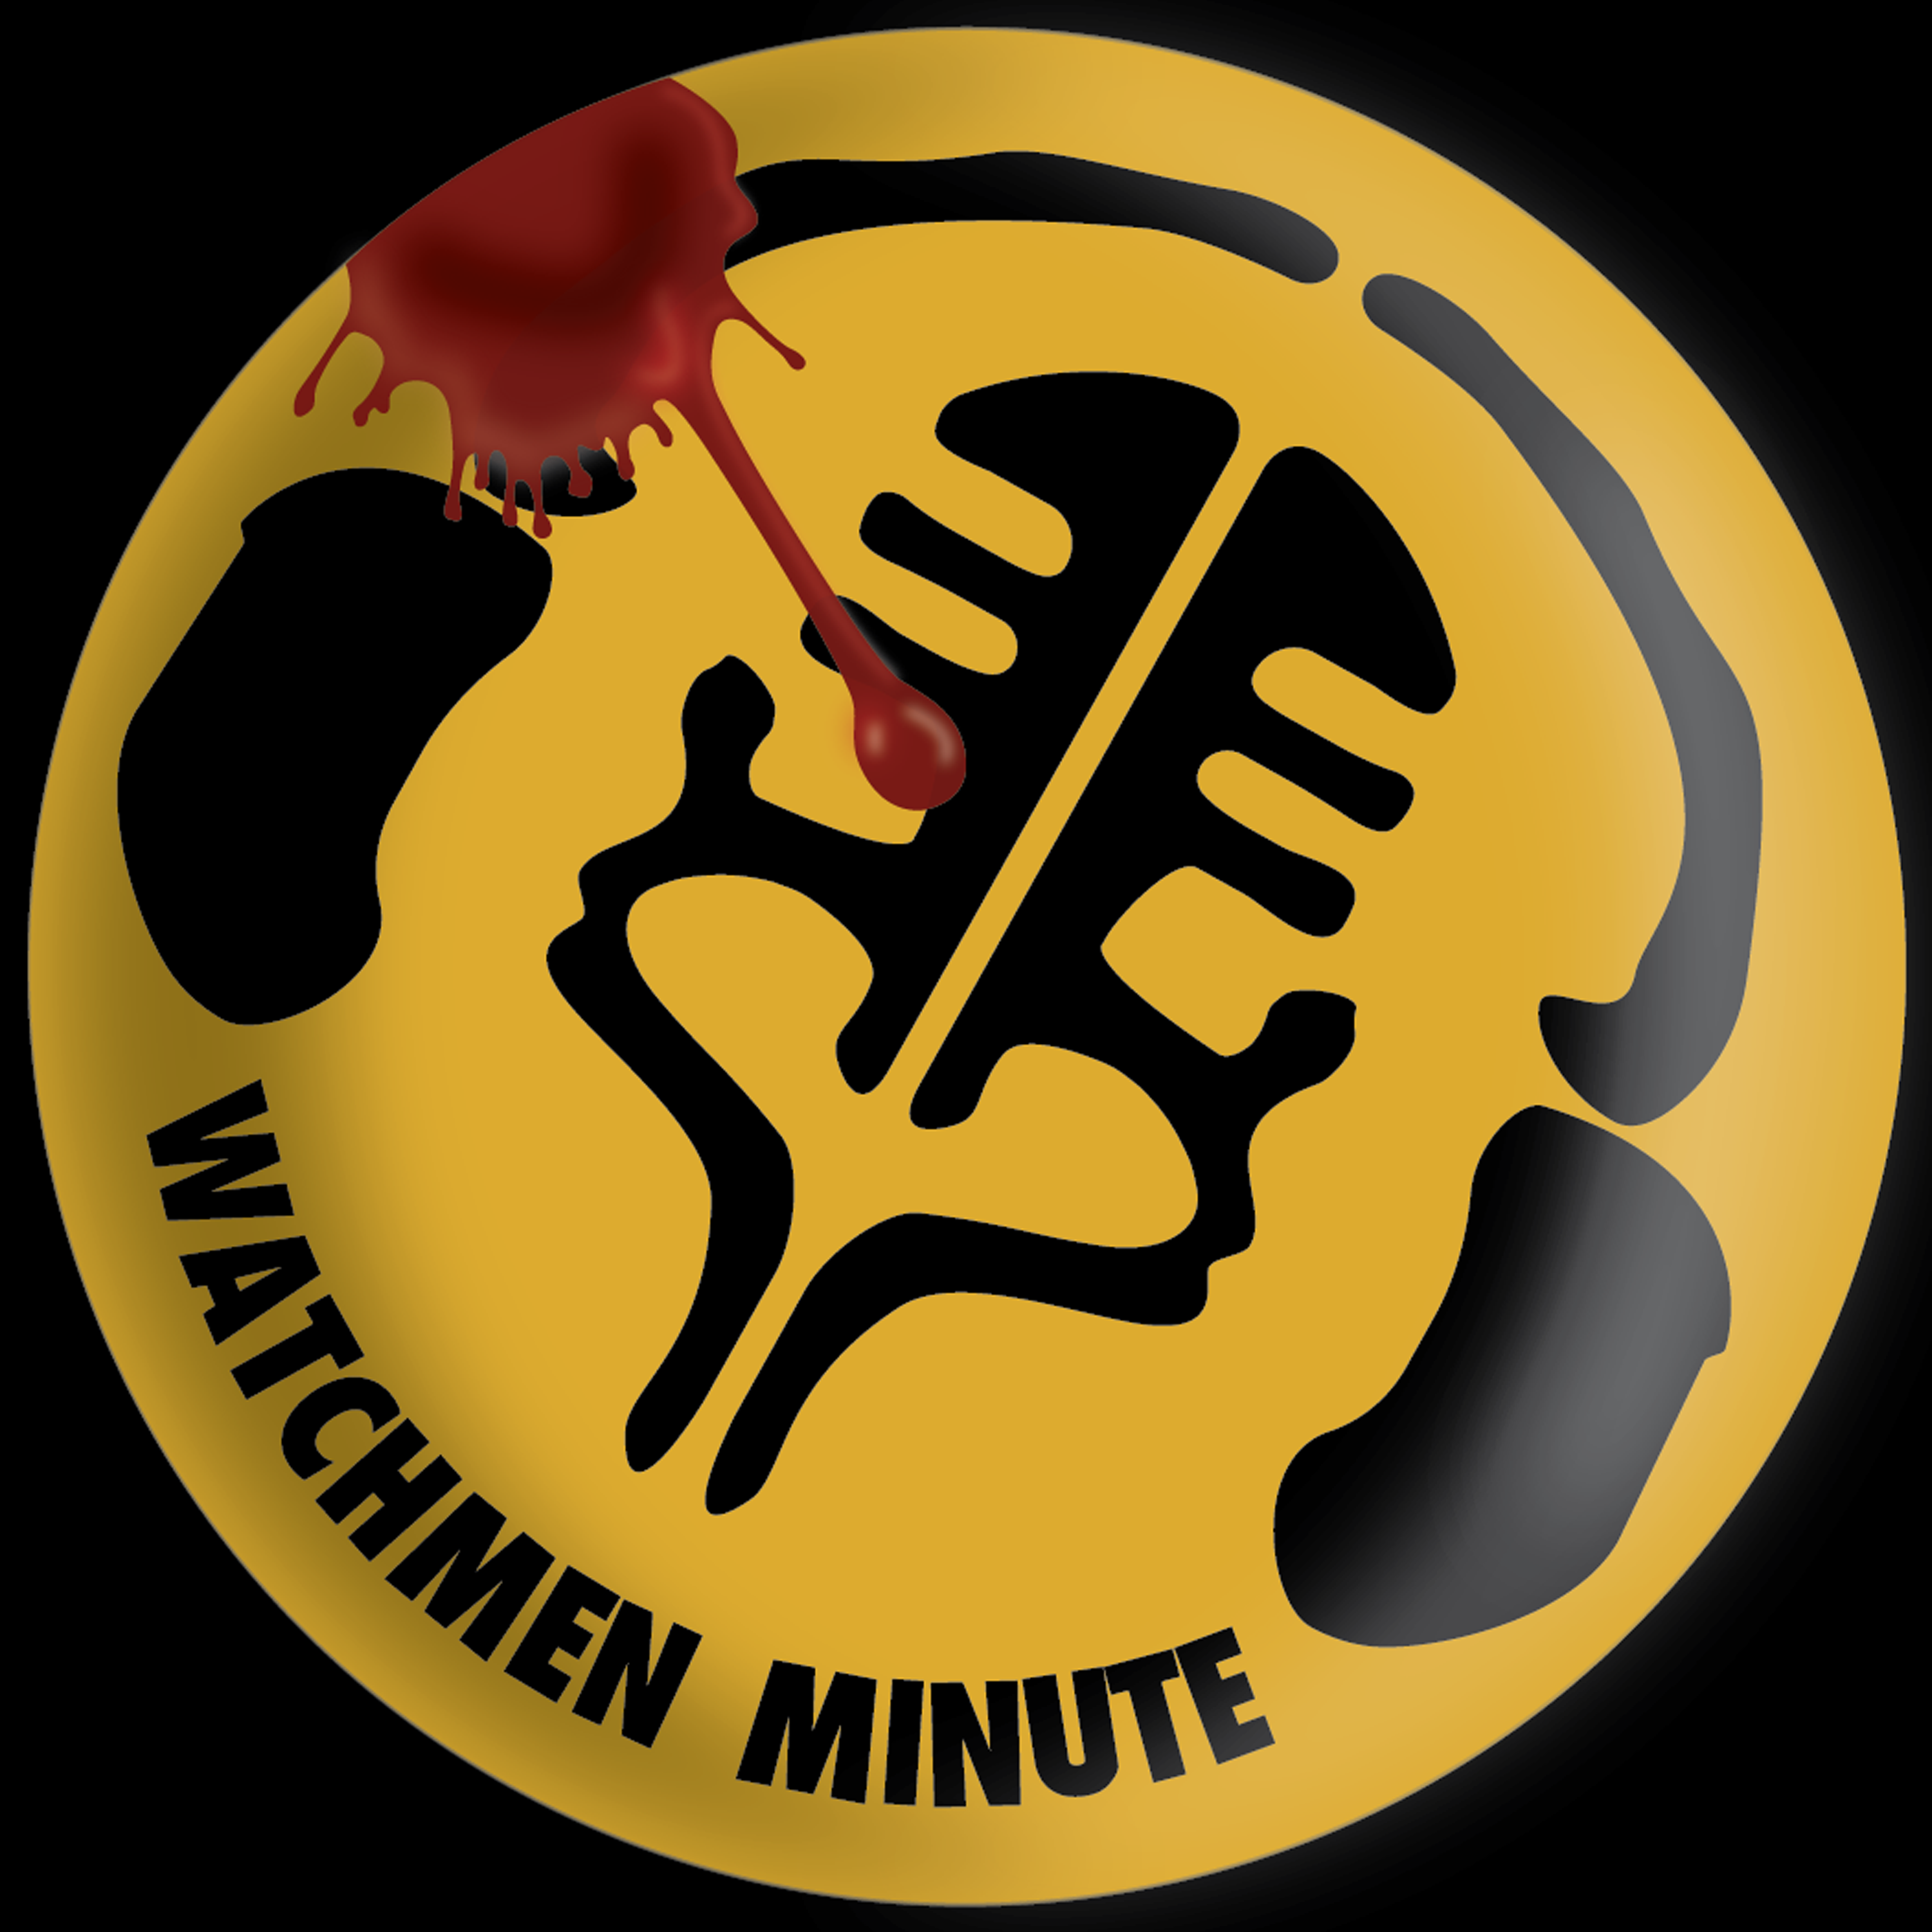 Artwork for Watchmen Minute 167 - Slow Motion Tail Movement